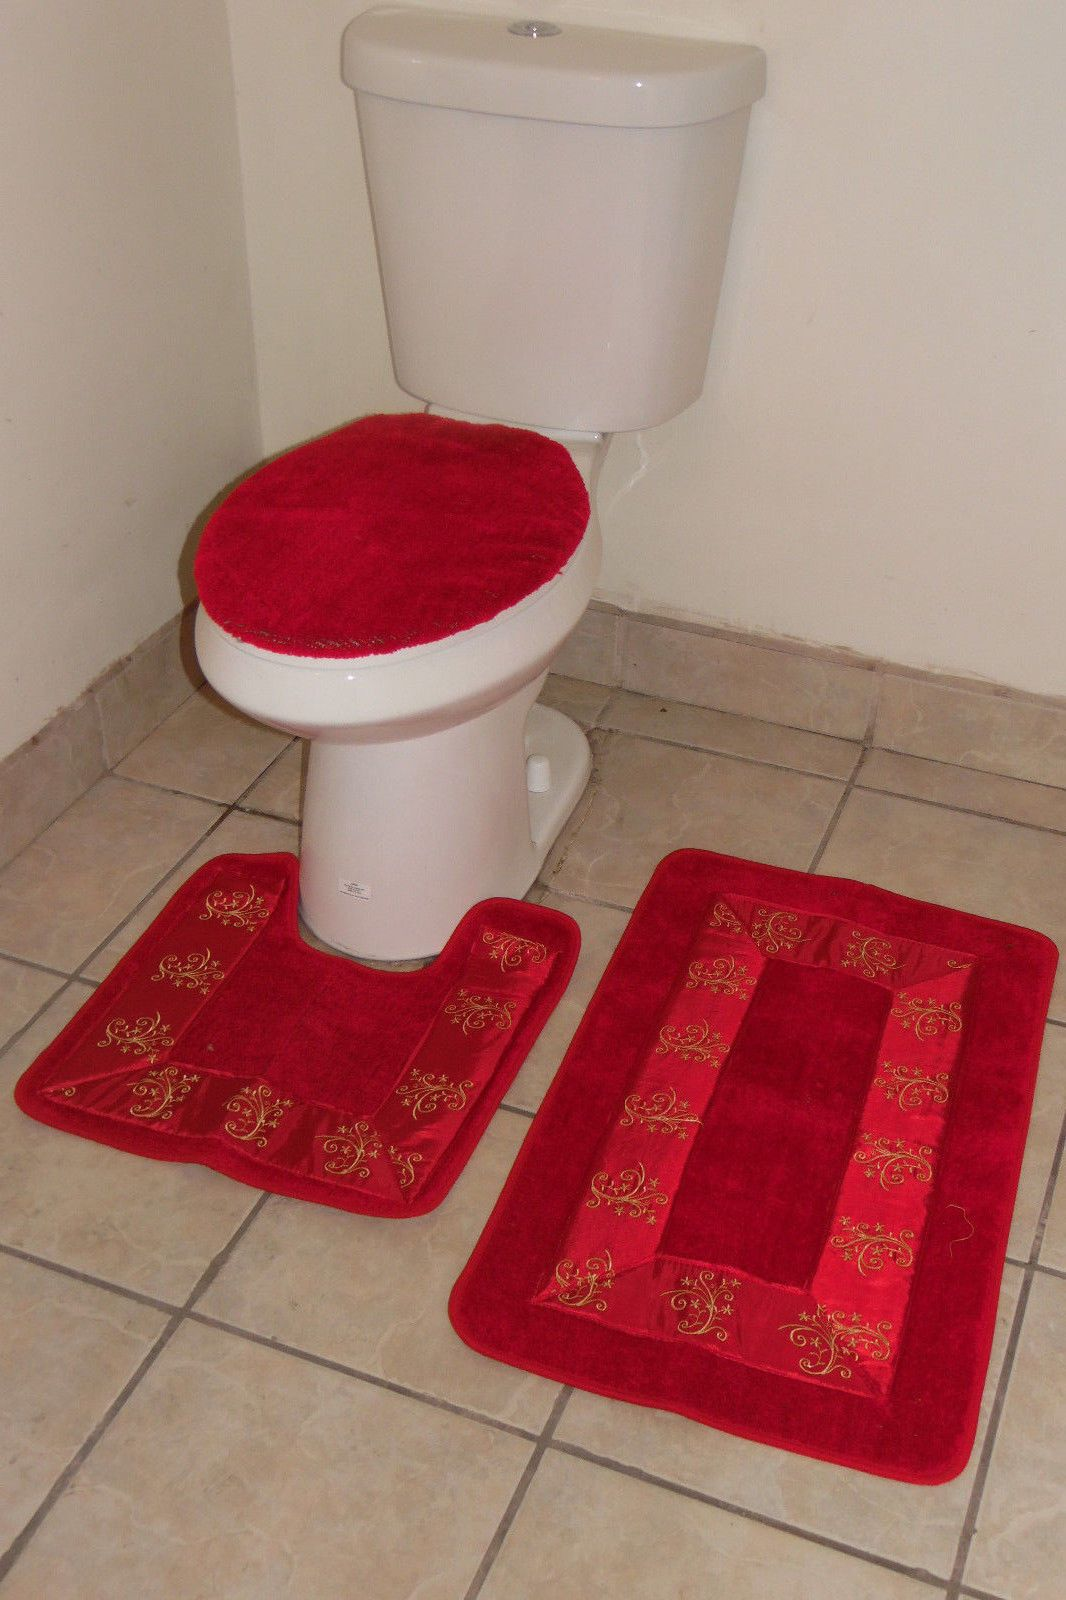 Bathmats Rugs And Toilet Covers 133696 3pc 5 Red Bathroom Set